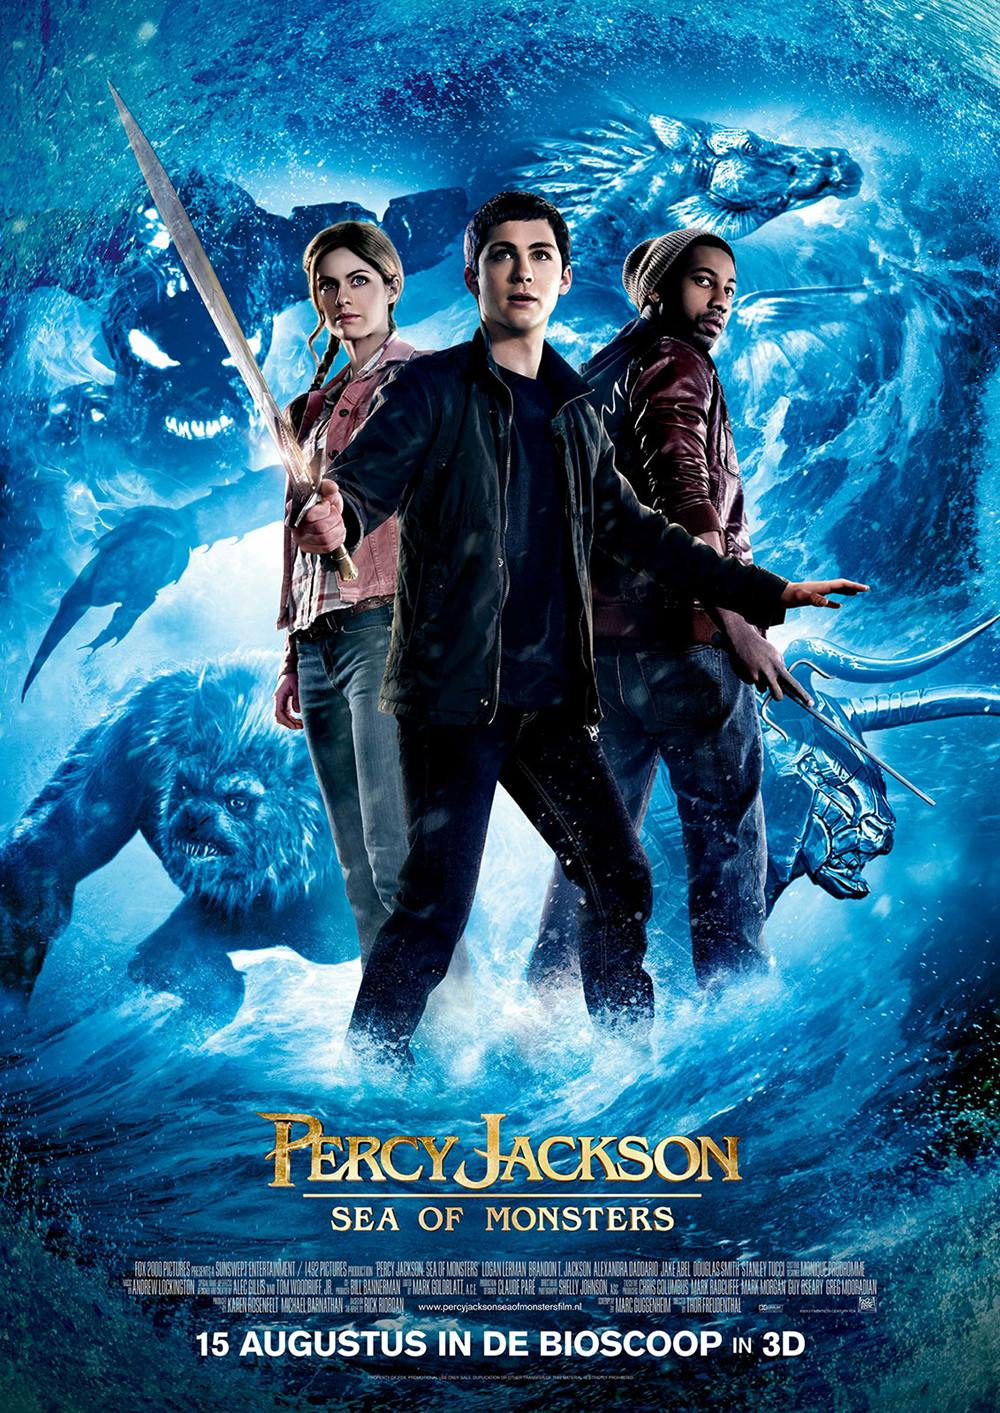 Percy Jackson Sea of Monsters - The Purple World of Tiyi